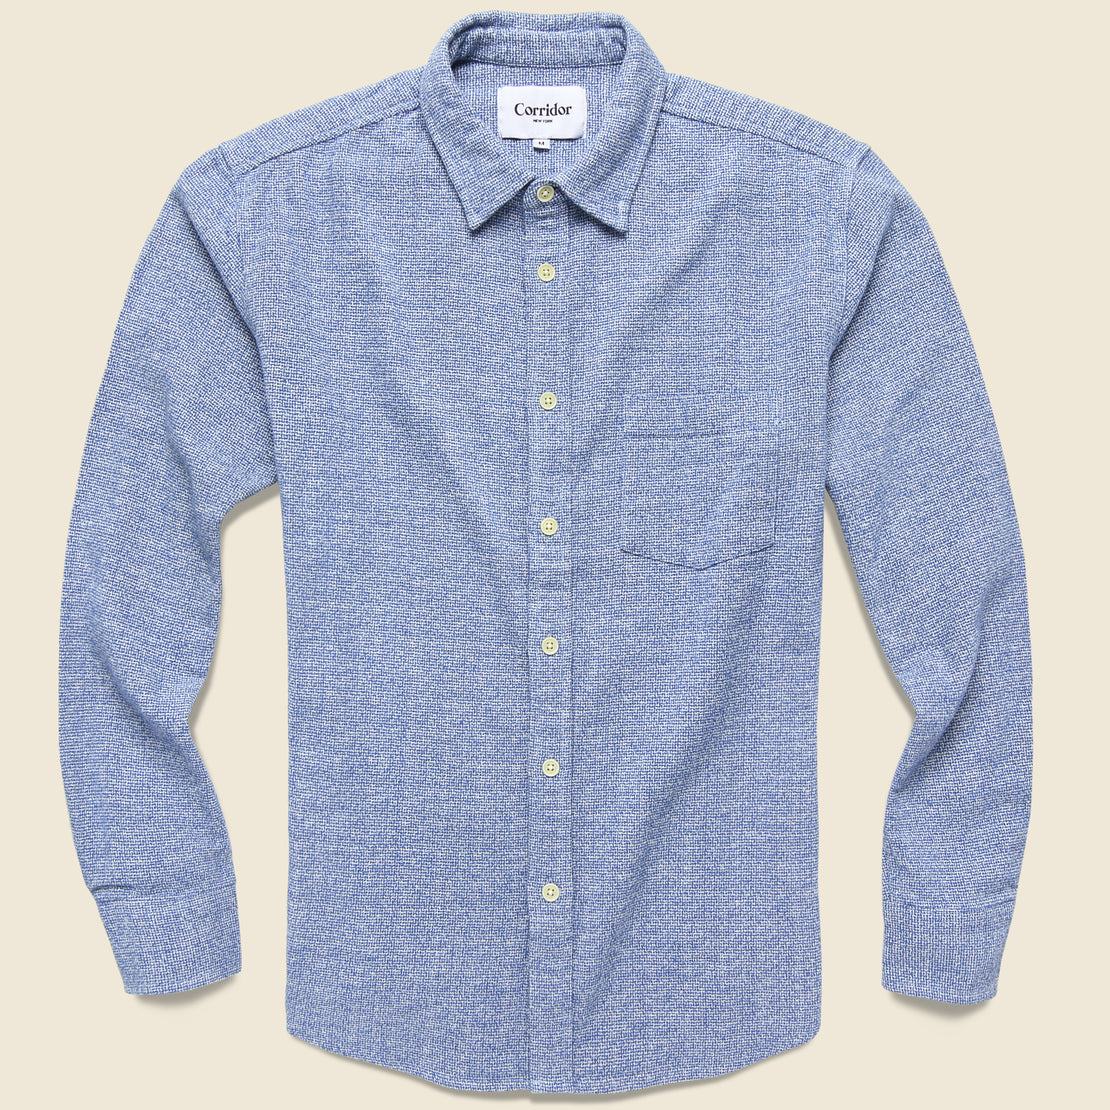 Corridor Speckled Flannel - Blue